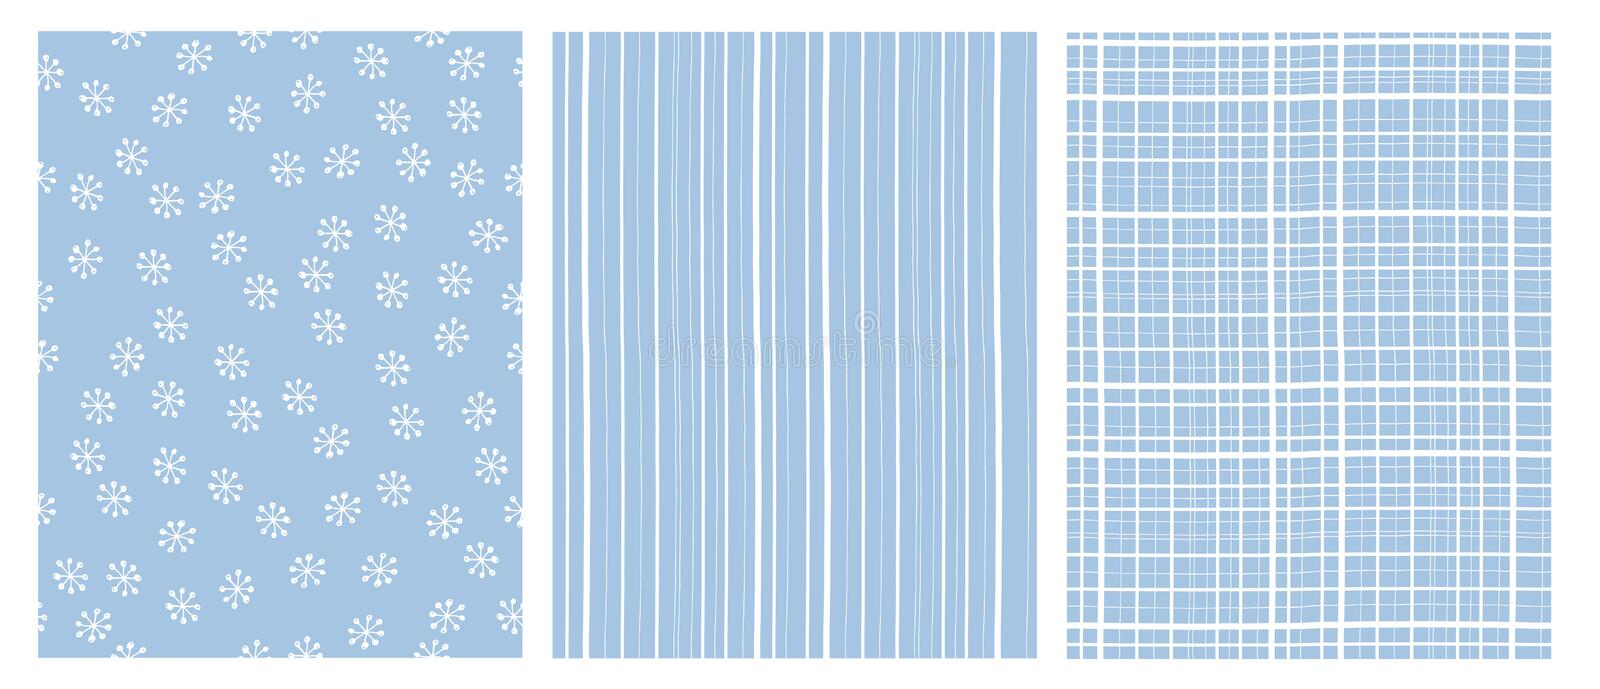 Hand Drawn Abstract Vector Patterns. White and Blue Infantile Design. Stripes and Snow Flakes. vector illustration